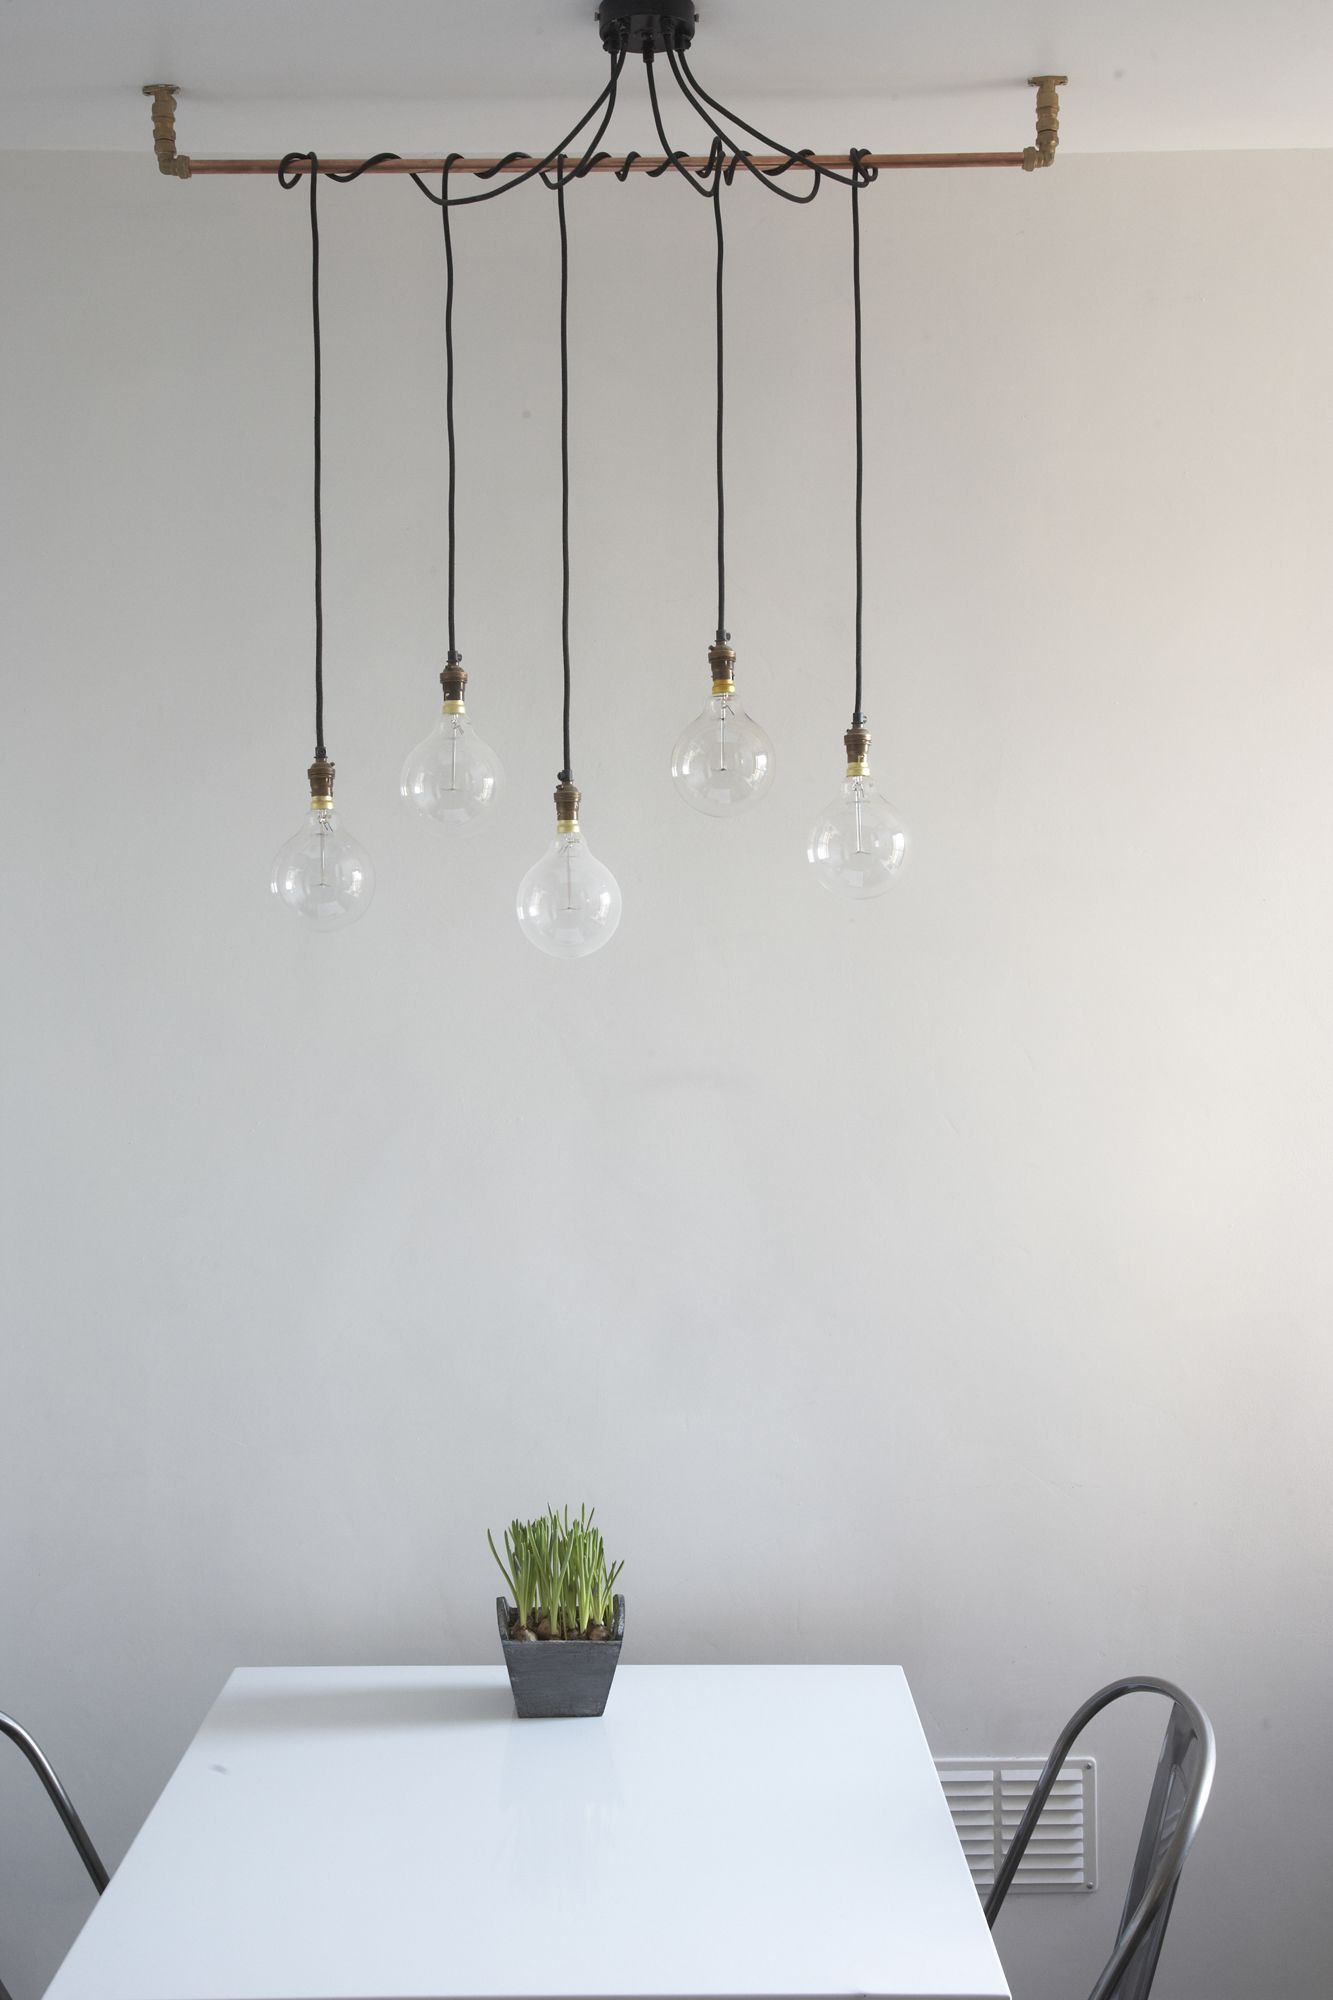 Simple Pendant Lighting We Love The Beautiful Simplicity Of Hanging These Gorgeous